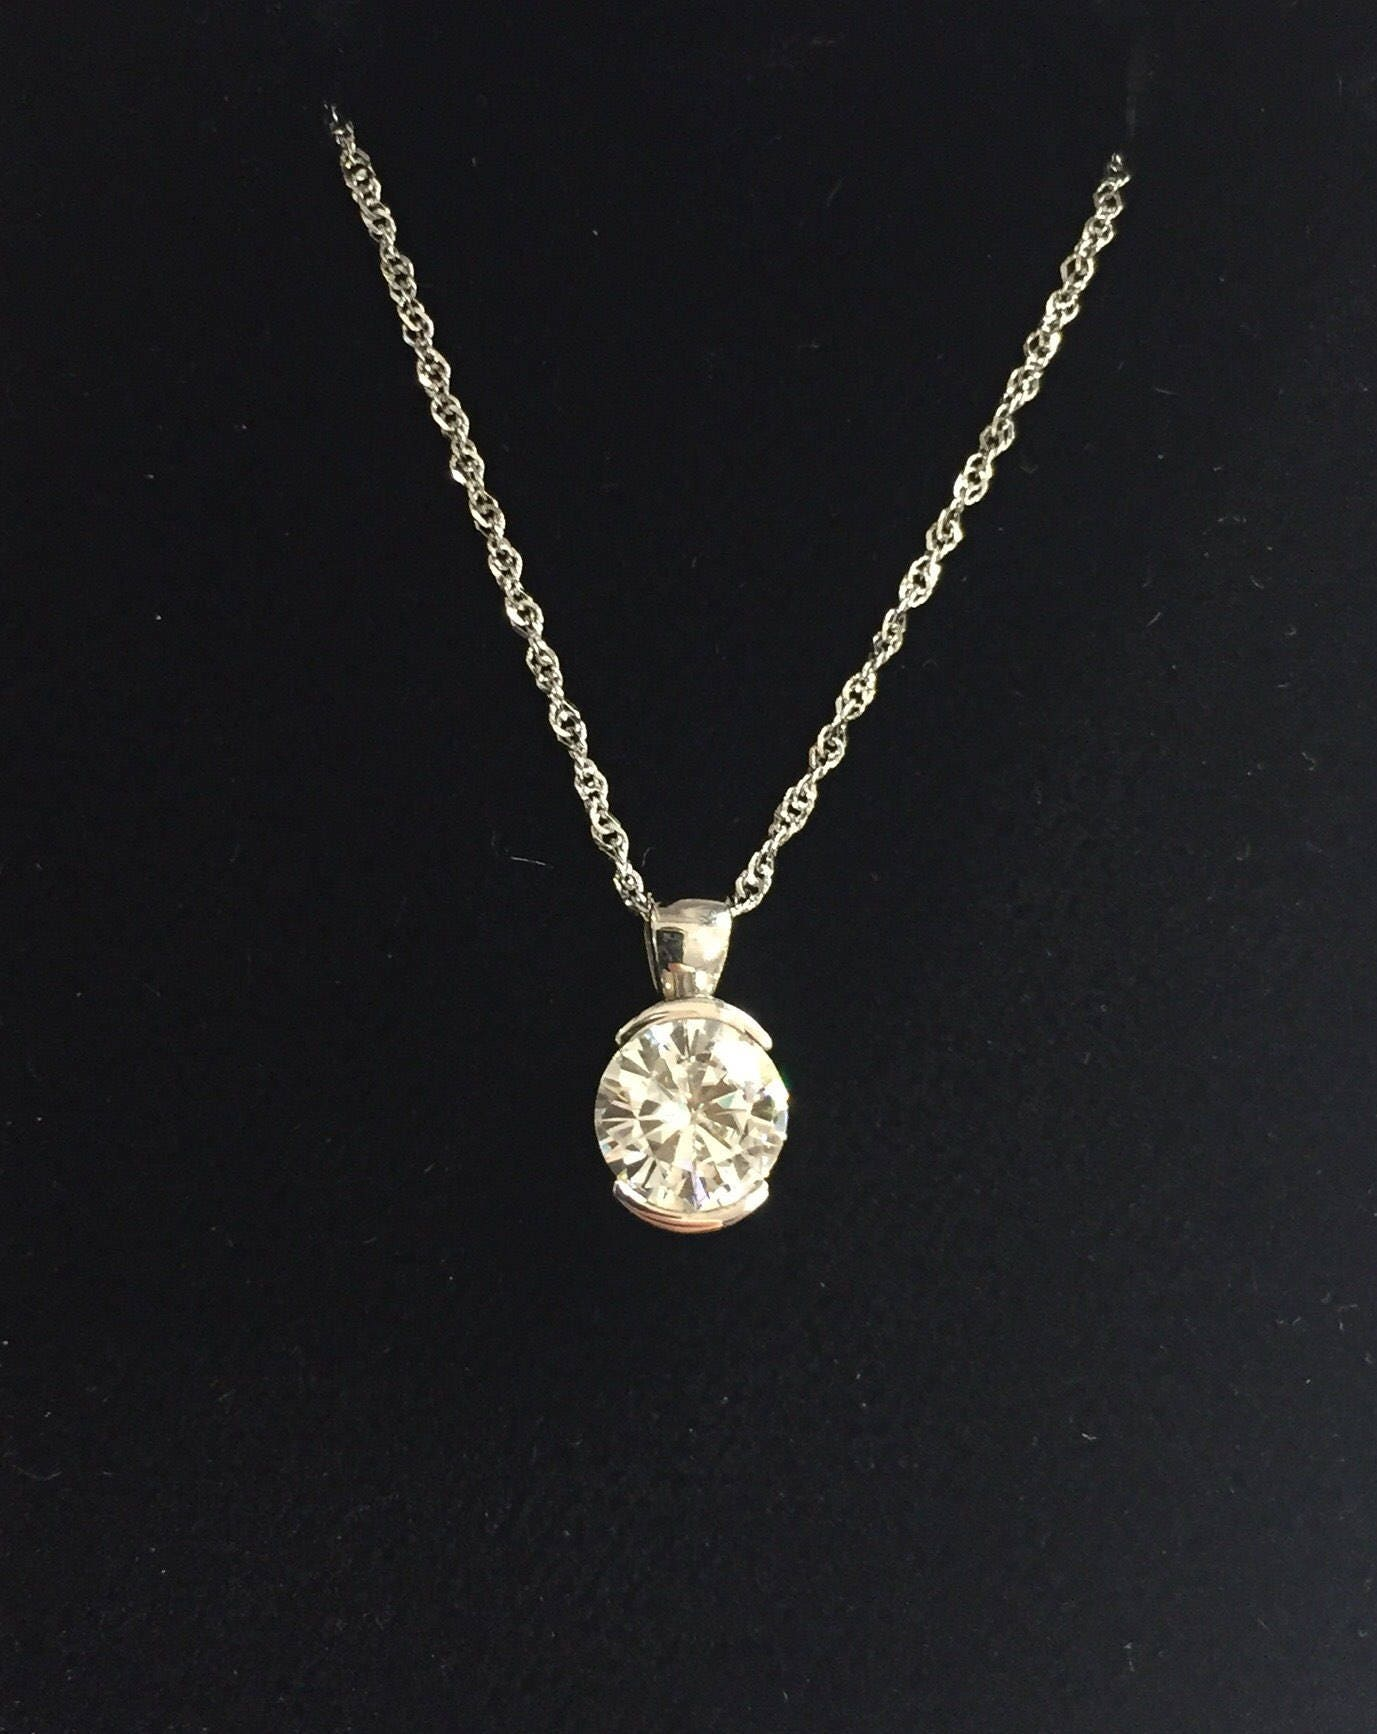 on cable chain quick round view pendant p moissanite solitaire necklace